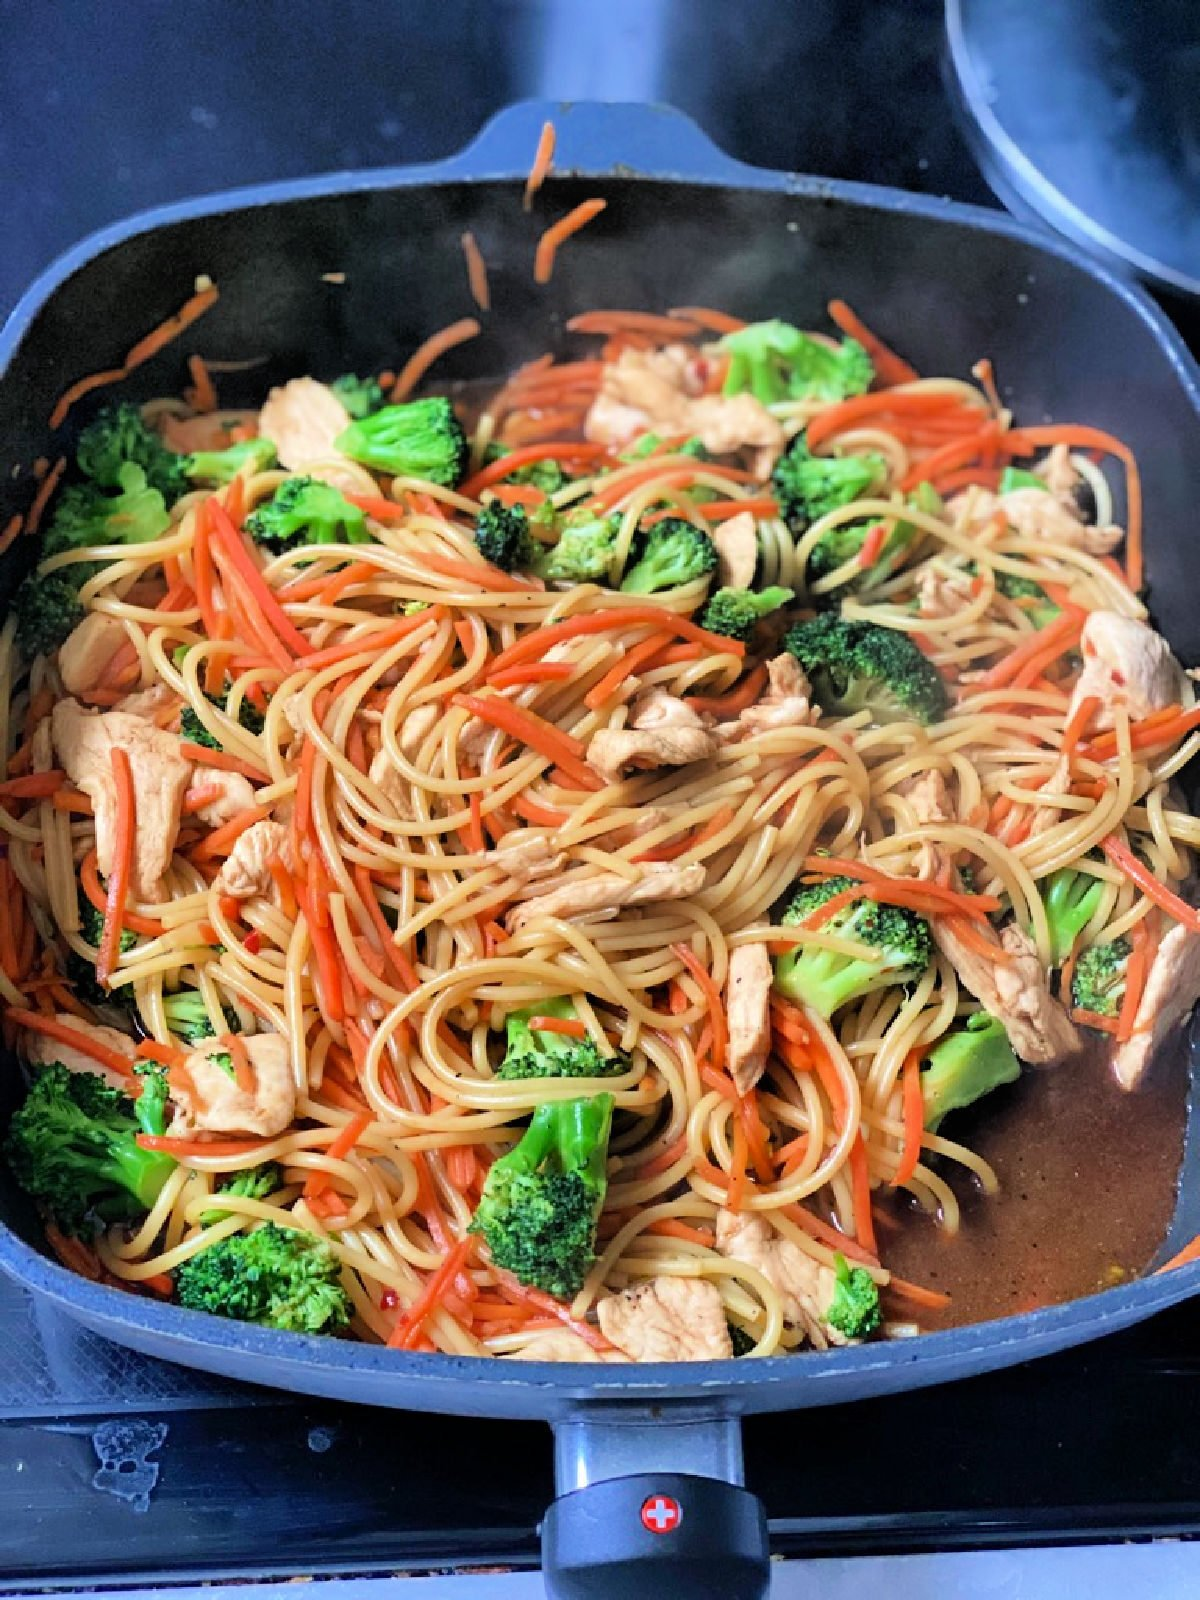 Spaghetti noodles, lo mein seasoning, broccoli, and shredded carrots in a skillet.